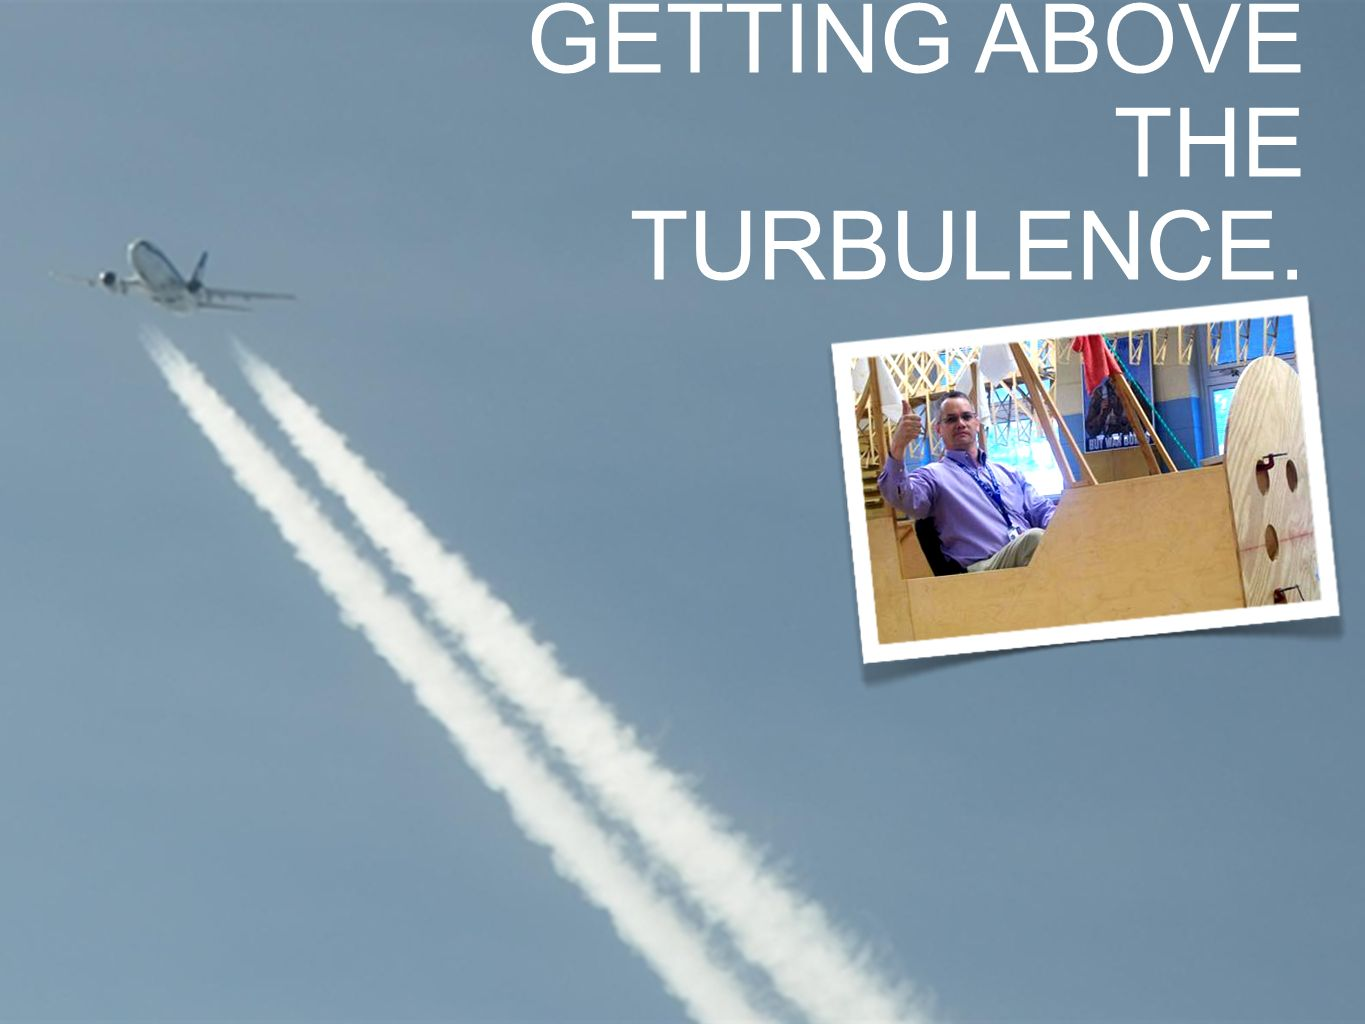 GETTING ABOVE THE TURBULENCE.